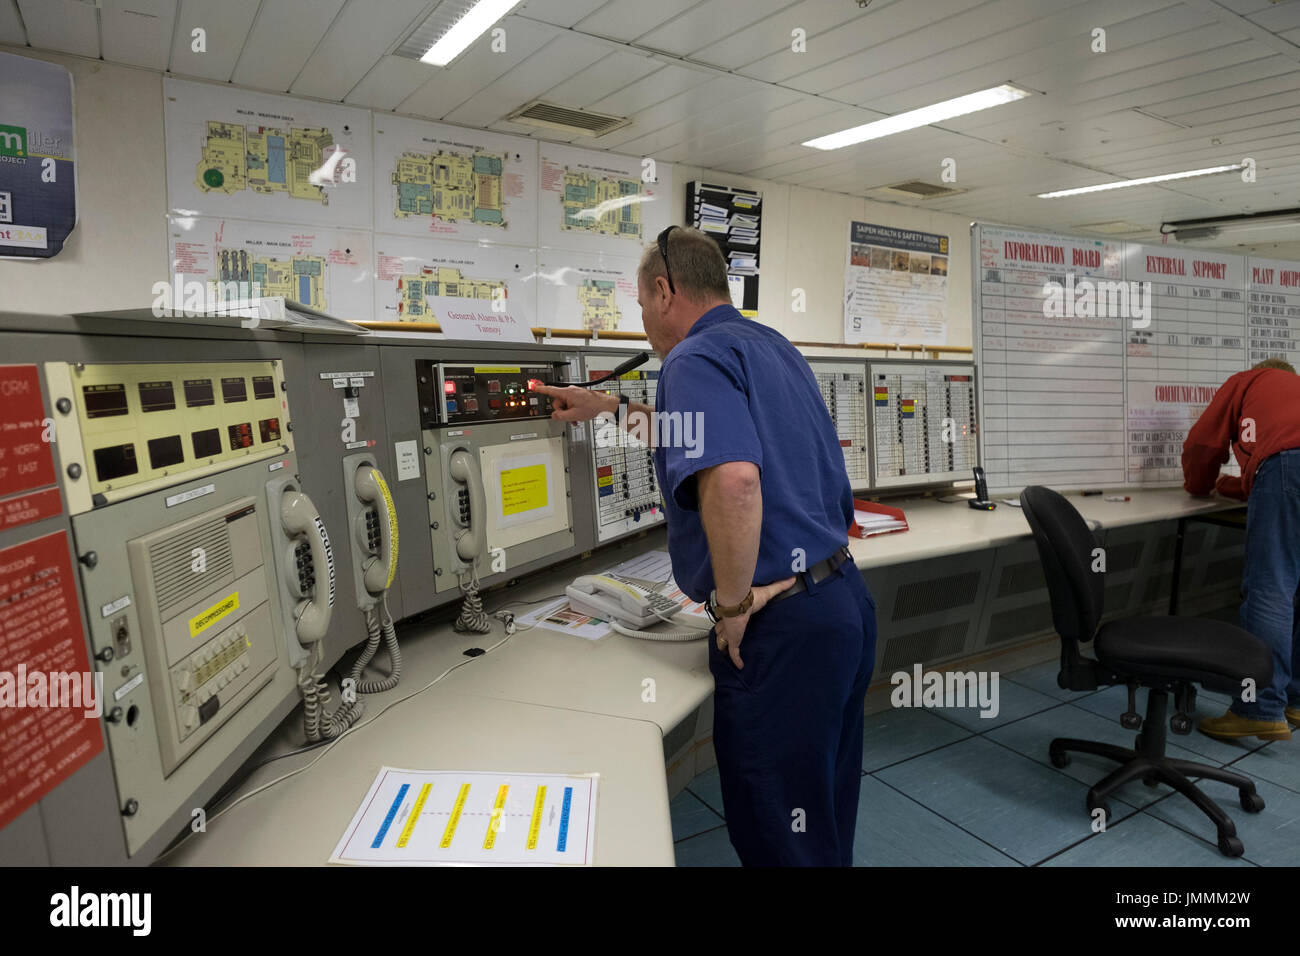 The OIM (offshore installation manger) making a public announcement, during a emergency drill. credit: LEE RAMSDEN / ALAMY - Stock Image